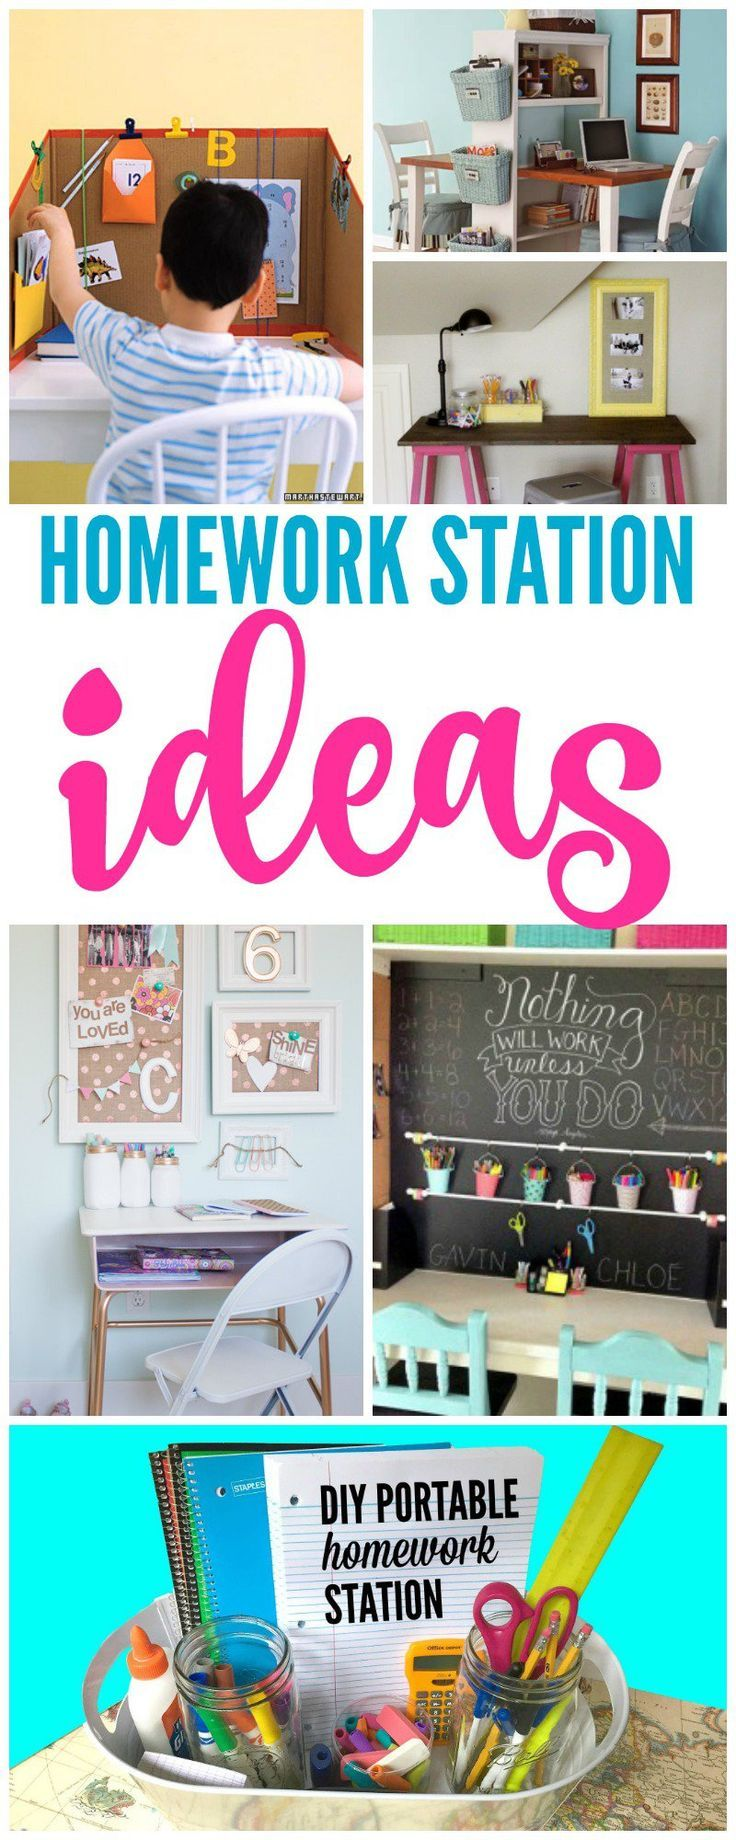 Homework Station! Back to School Tips and Tricks for Your Kids! Study Space that they will love!